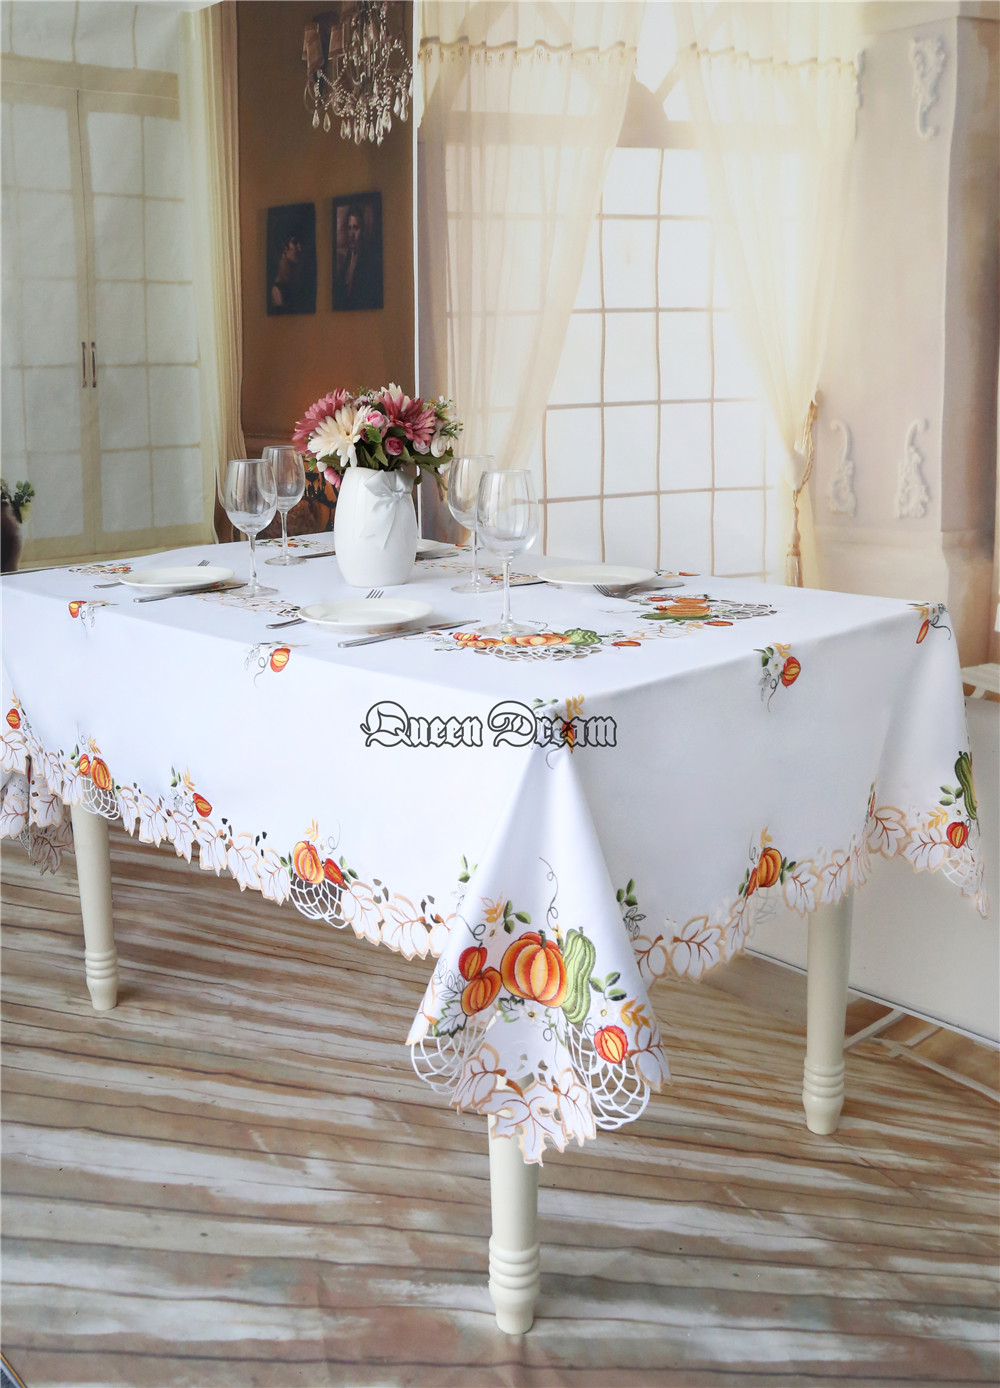 Halloween tablecloths - Compare Prices On Halloween Tablecloths Online Shopping Buy Low Compare Prices On Halloween Tablecloths Online Shopping Buy Low